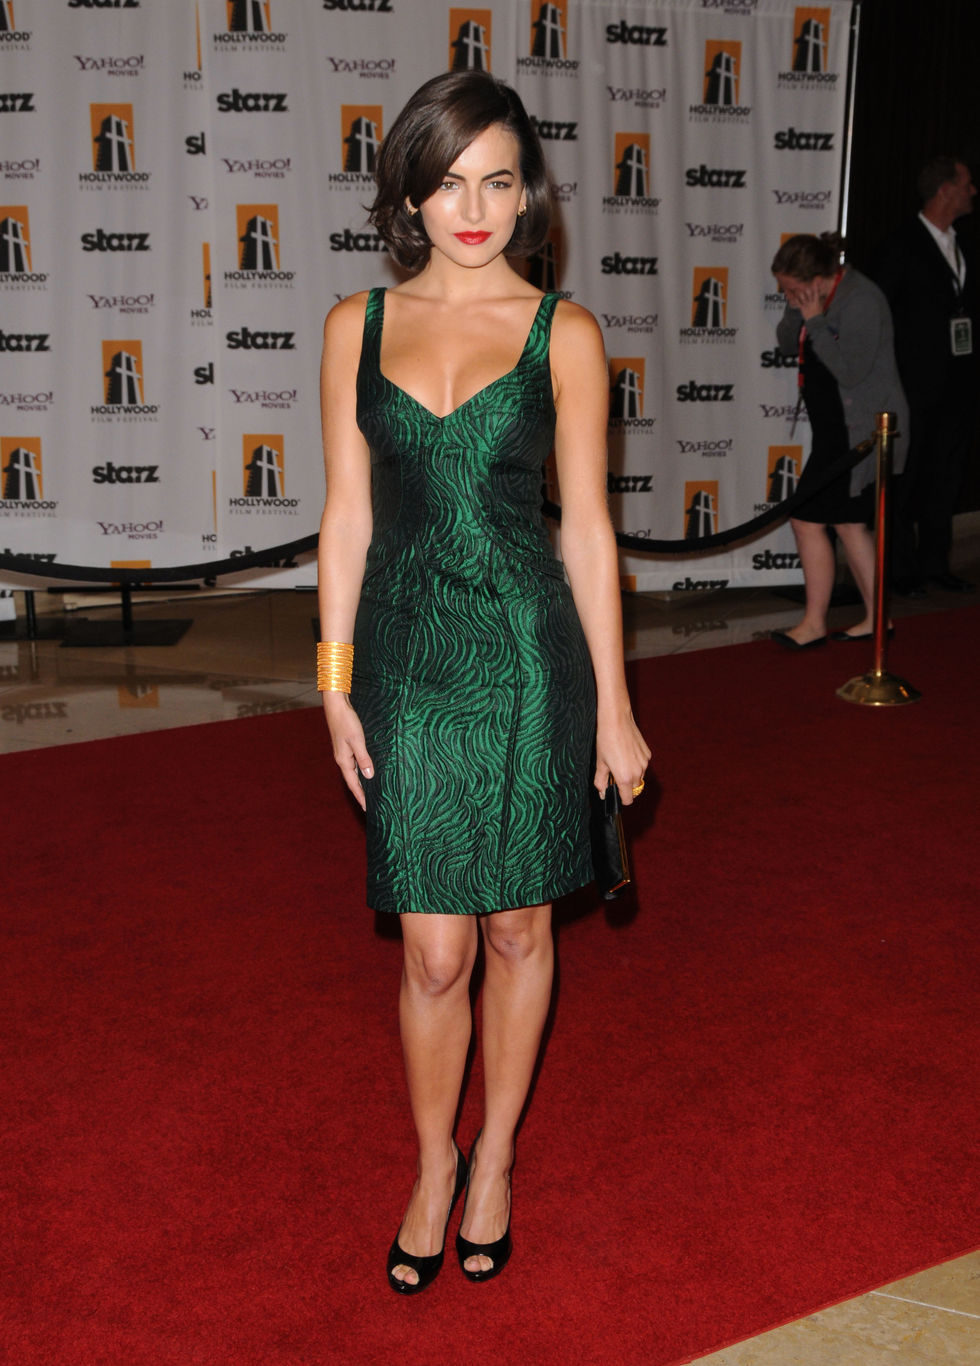 camilla-belle-hollywood-film-festivals-gala-ceremony-in-beverly-hills-01